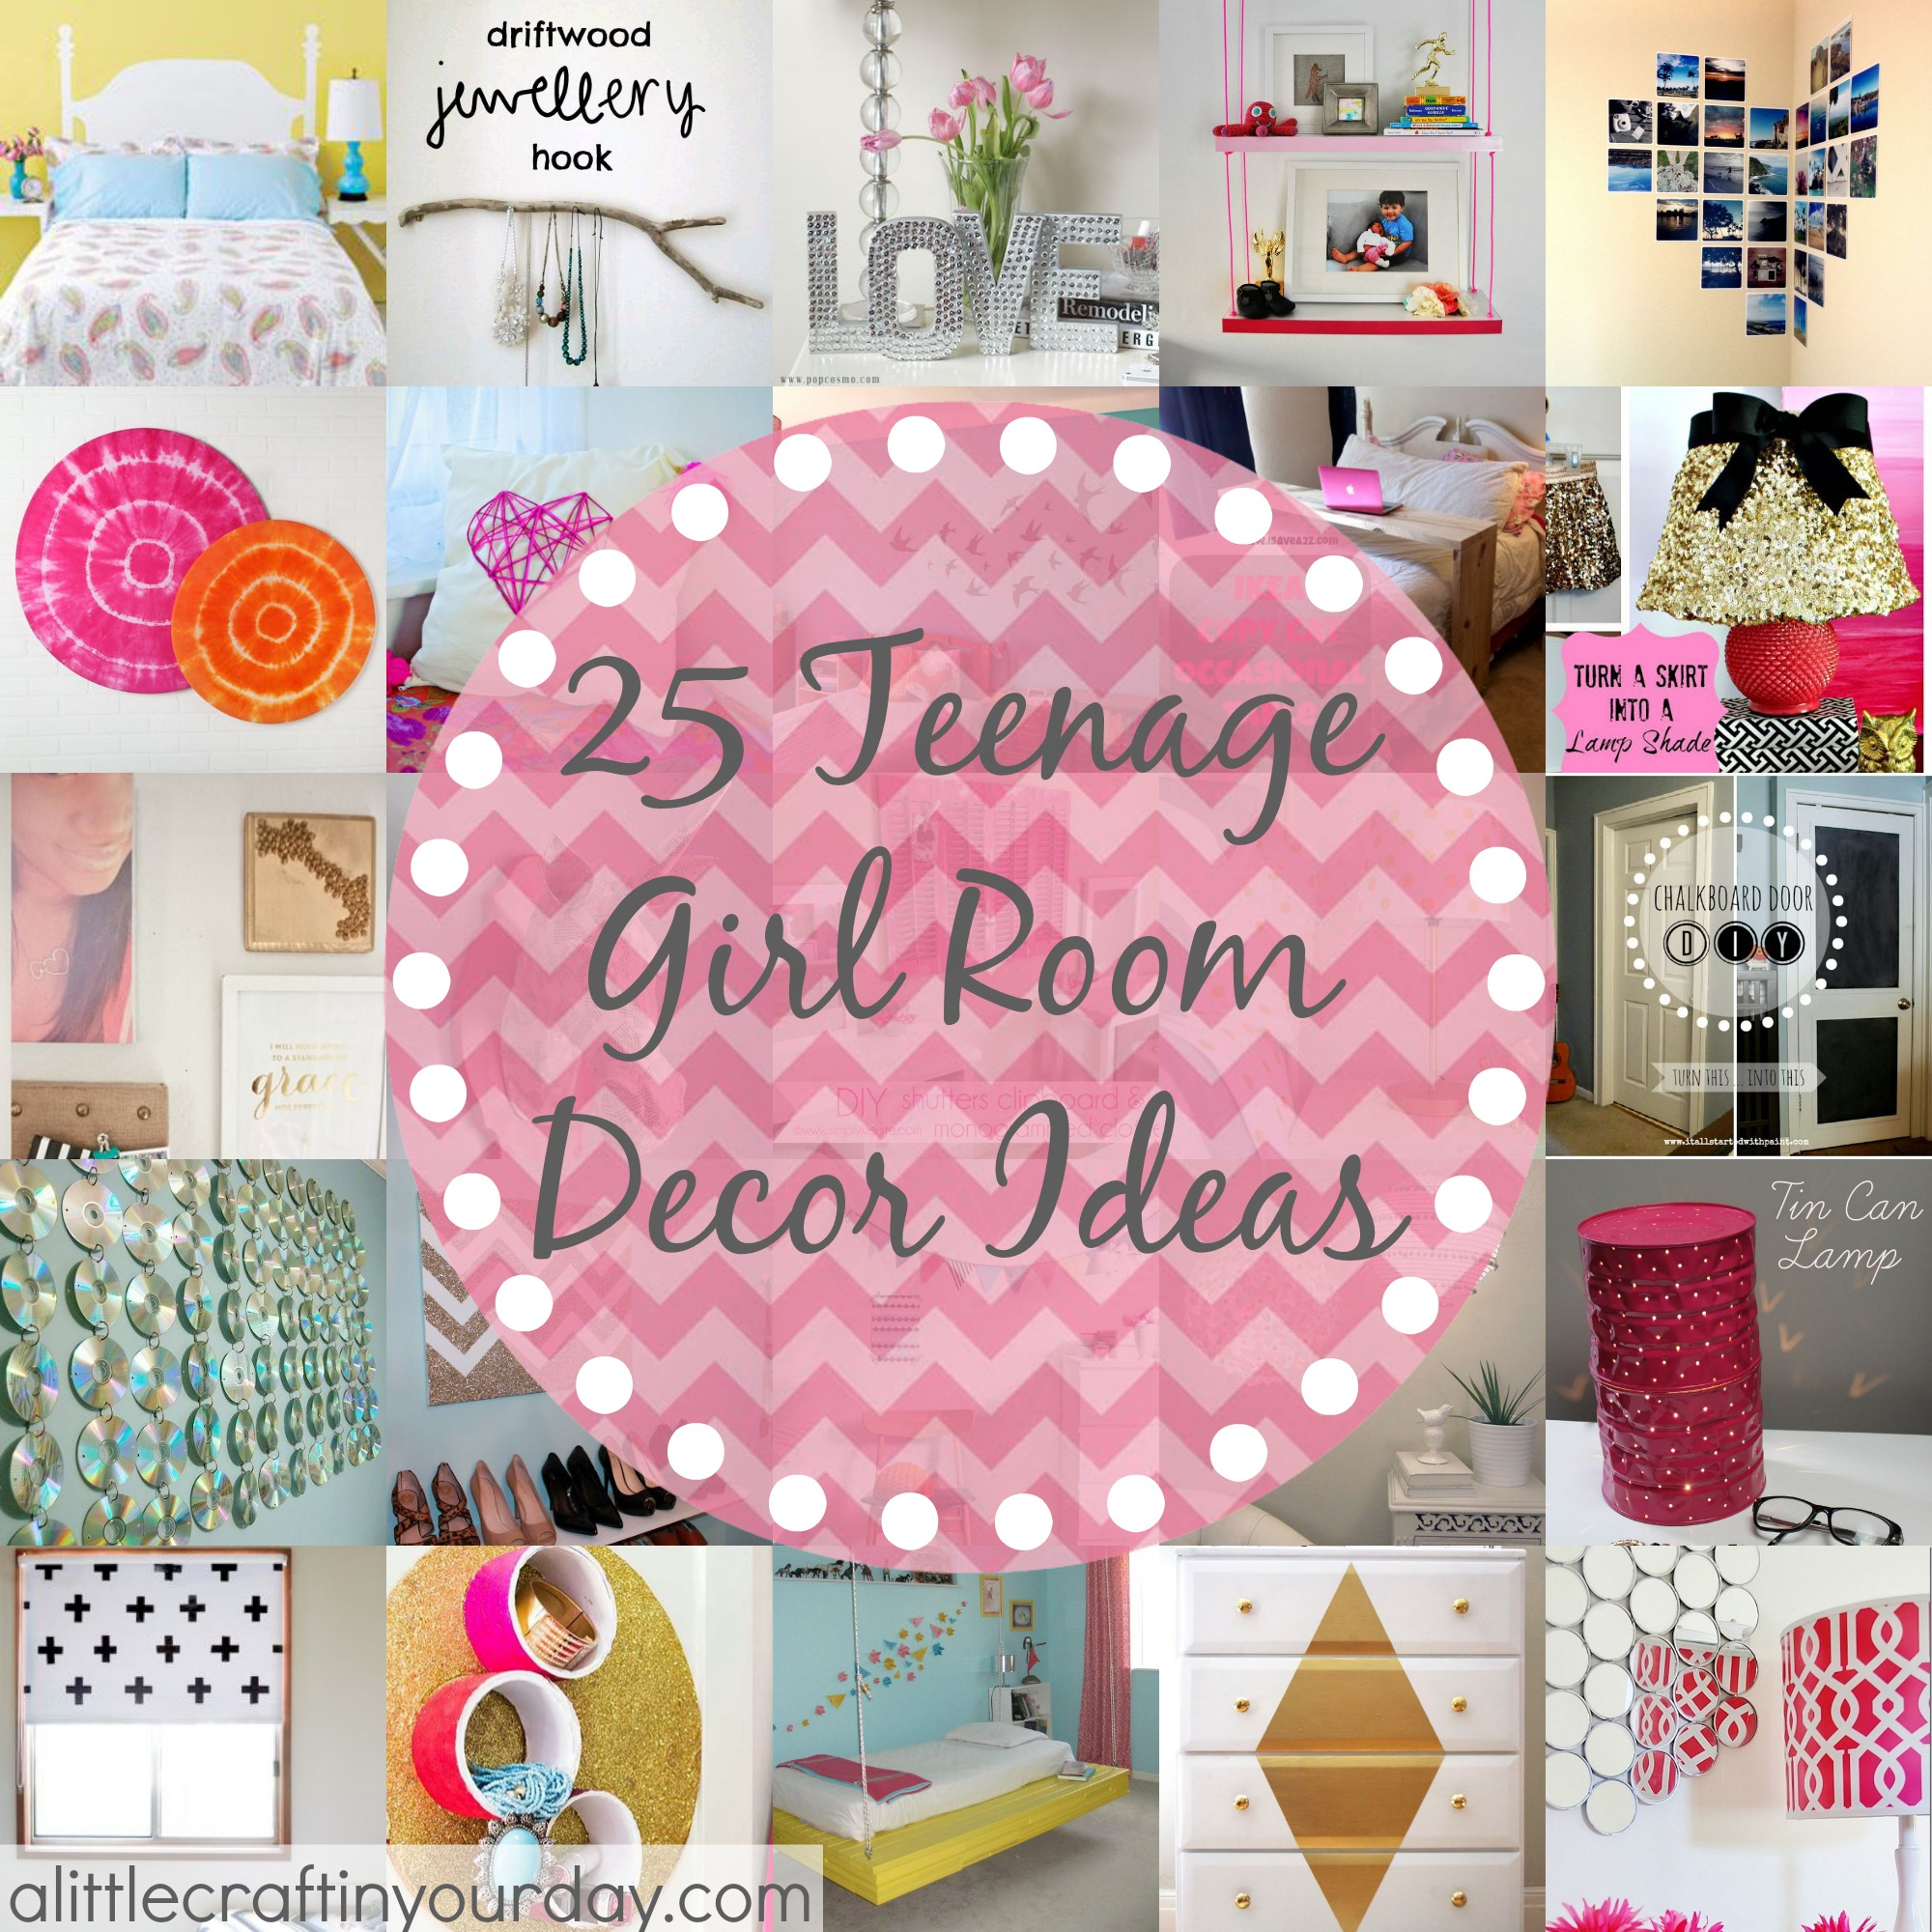 More Teenage Girl Room Decor Ideas A Little Craft In Your Day